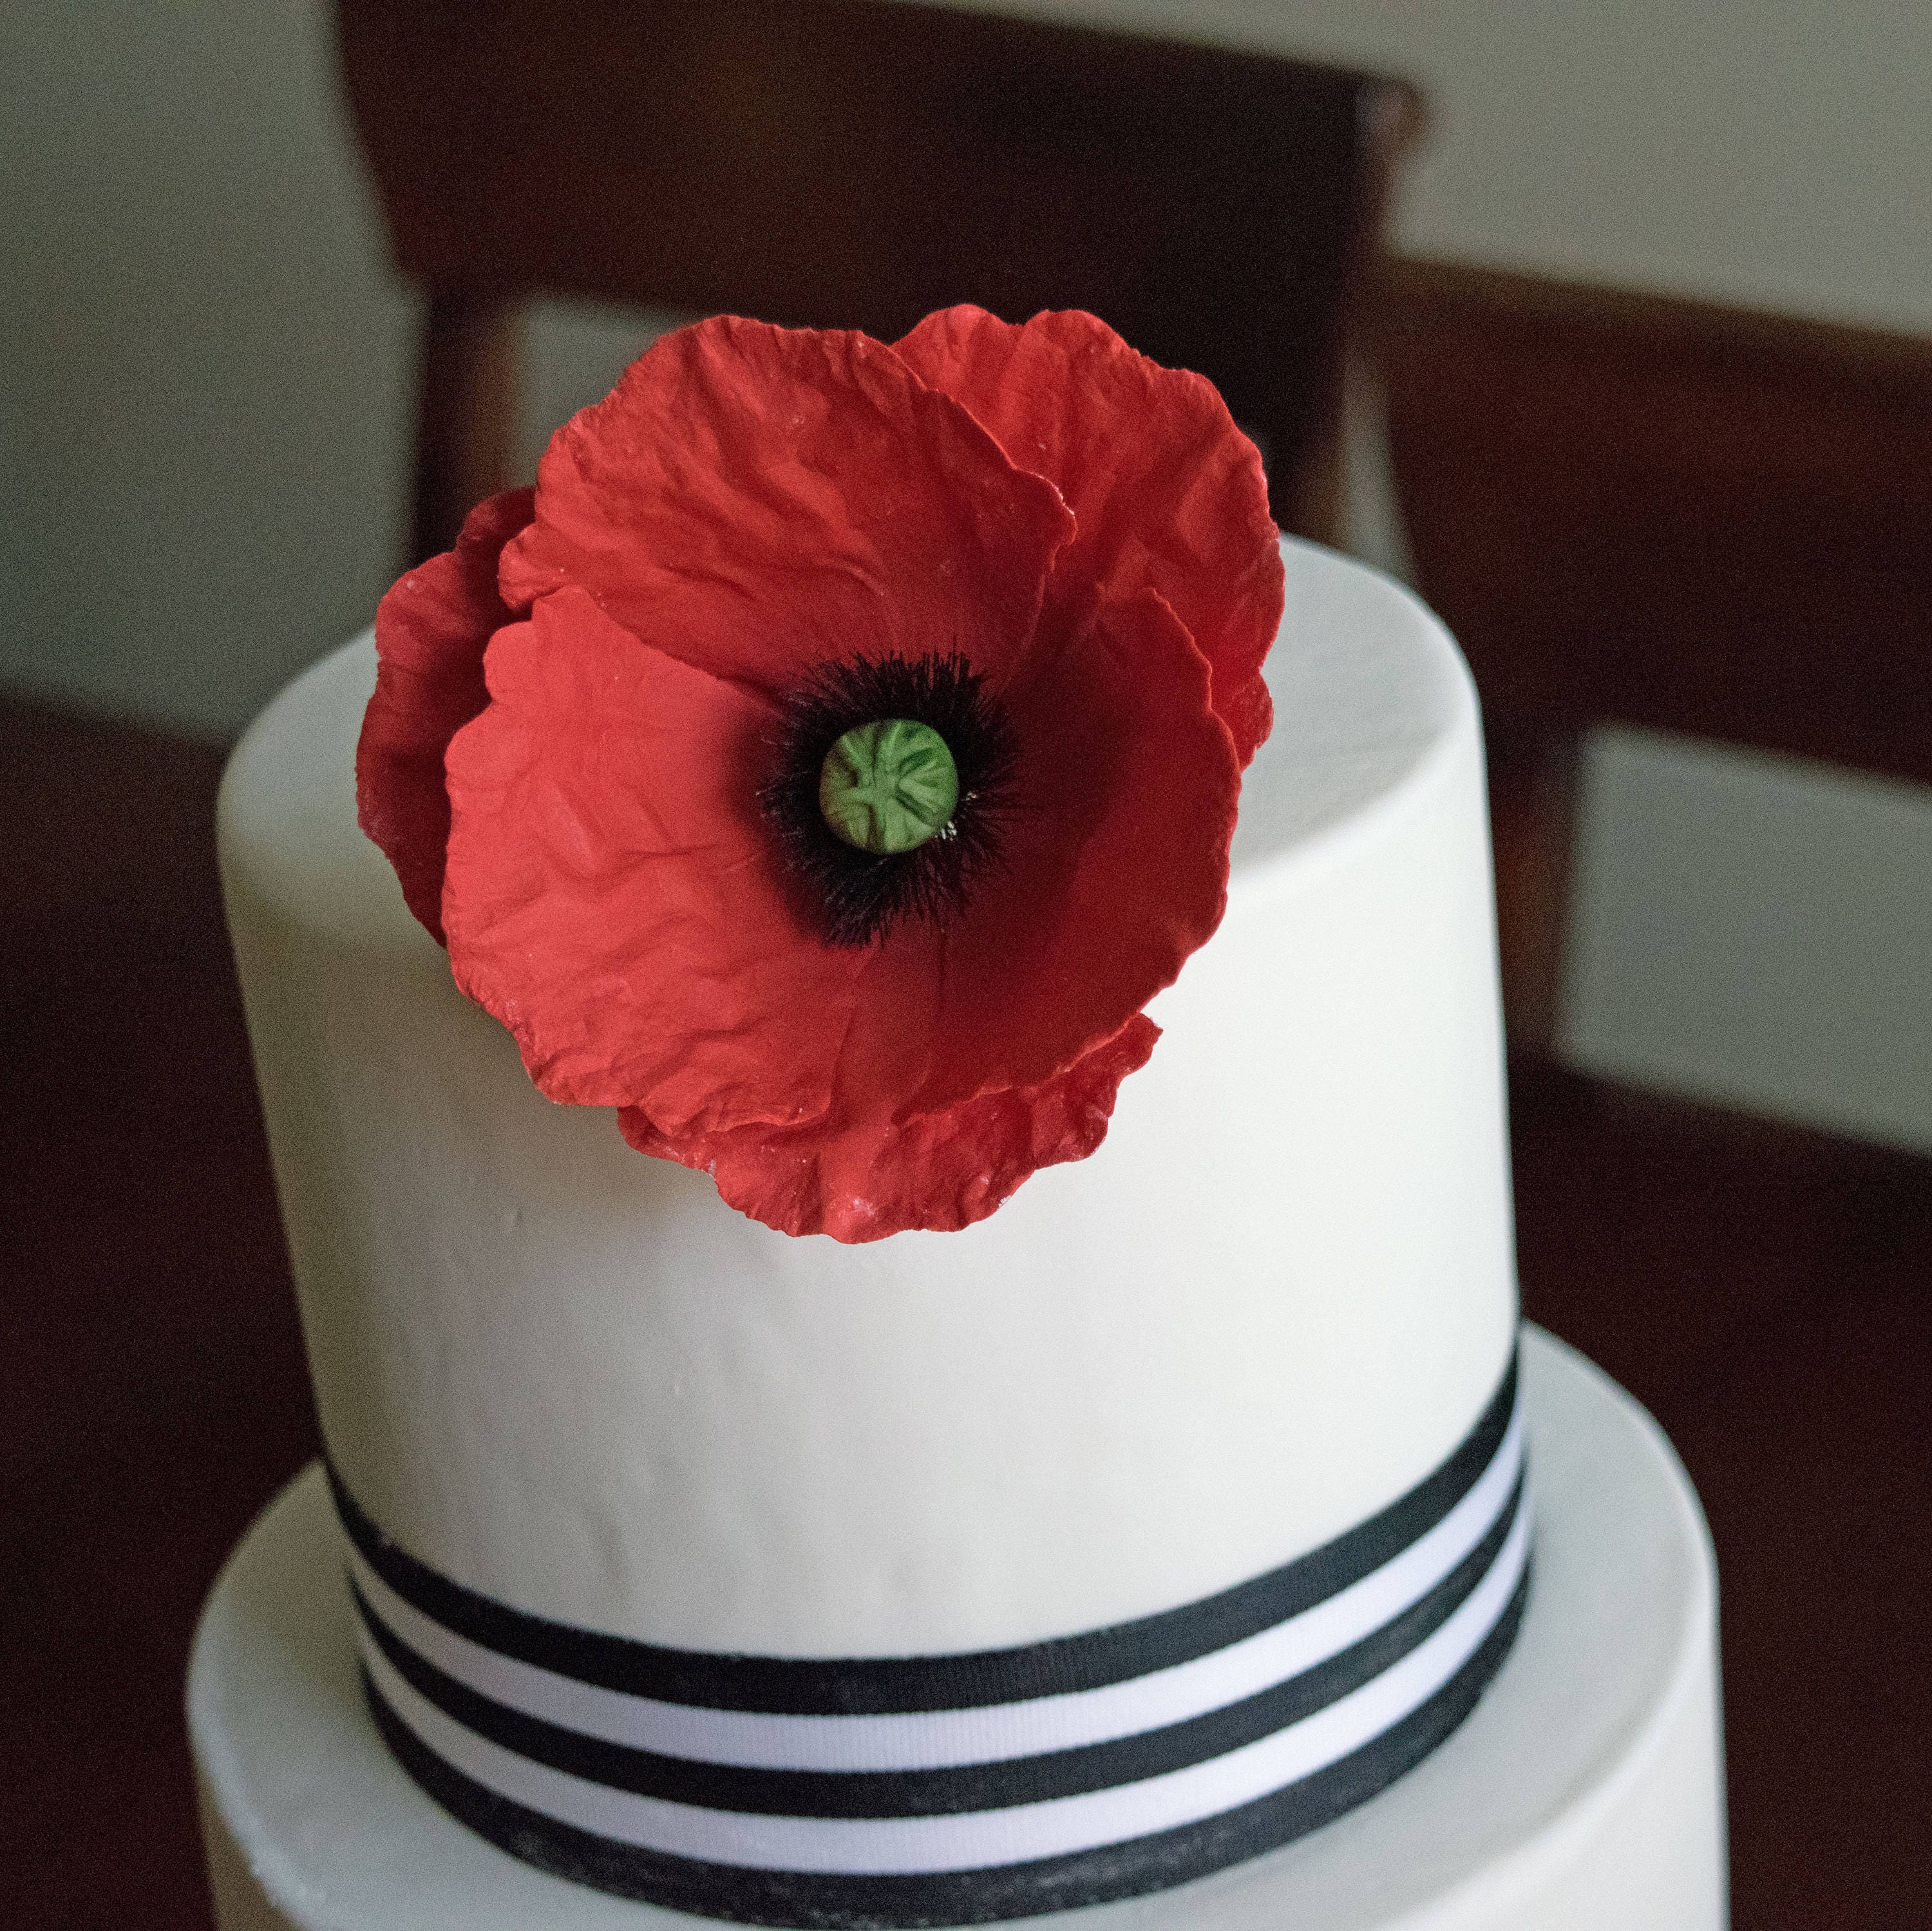 Red Poppy Cake Decorations